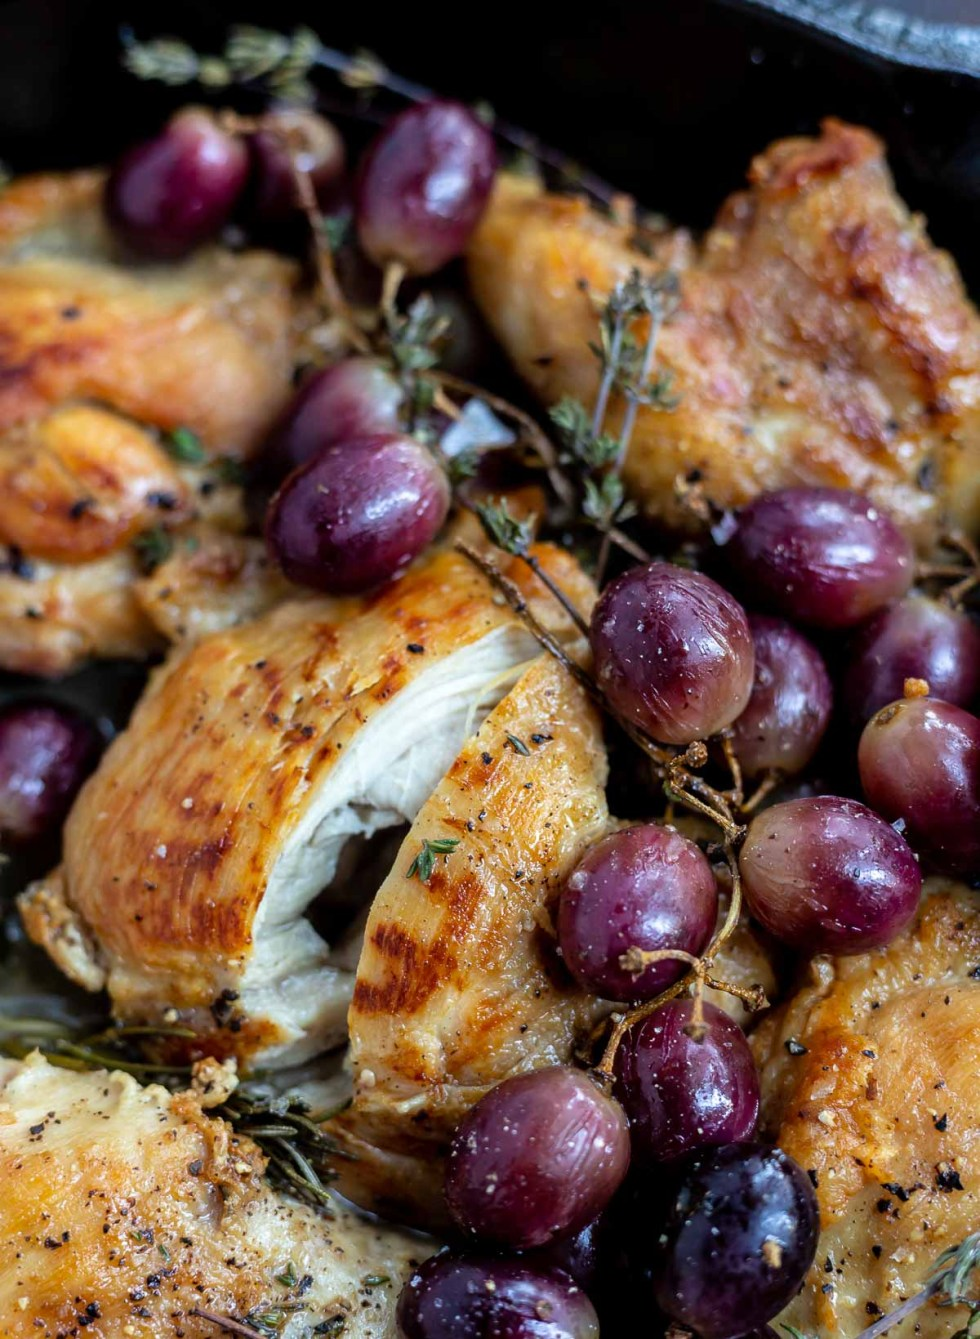 cooked chicken thigh sliced open next to roasted grapes